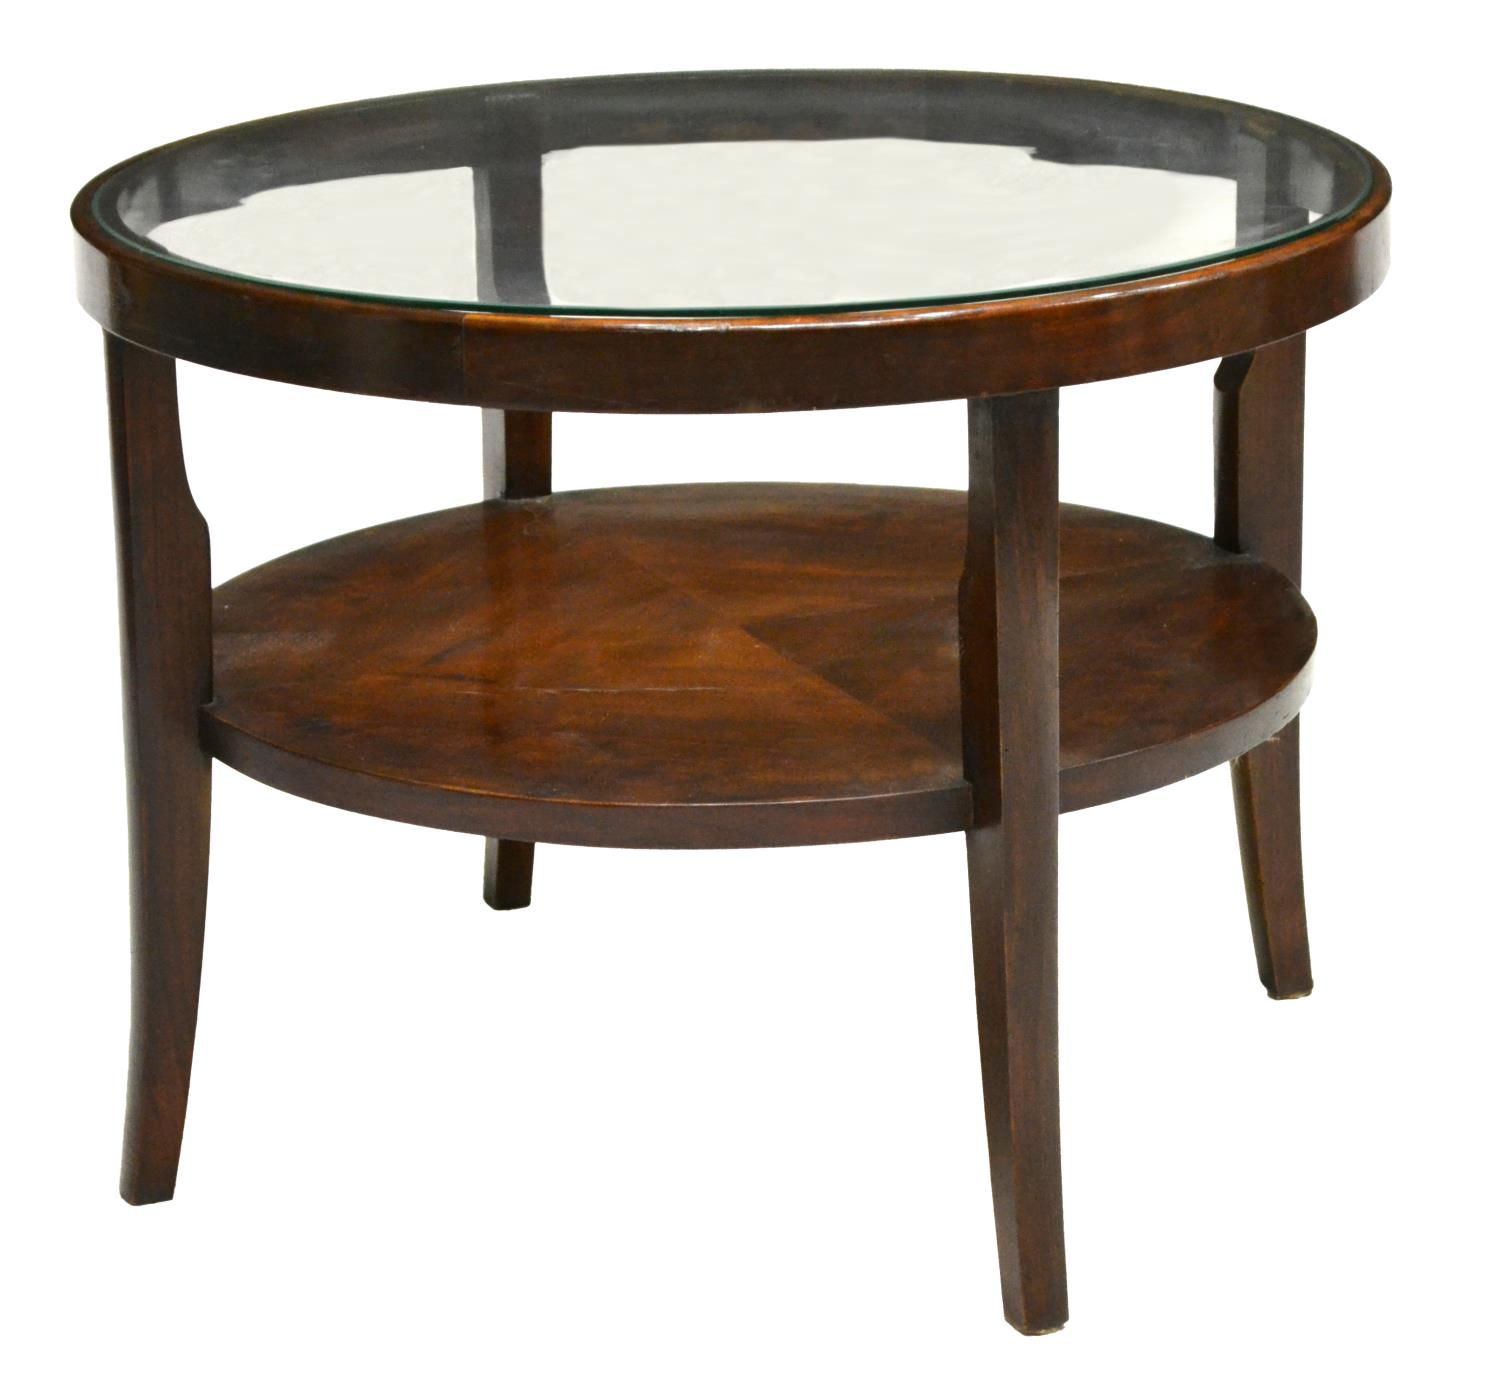 Italian Art Deco Glass Top Coffee Table C 1930s Spectacular Carved Furniture And Estates